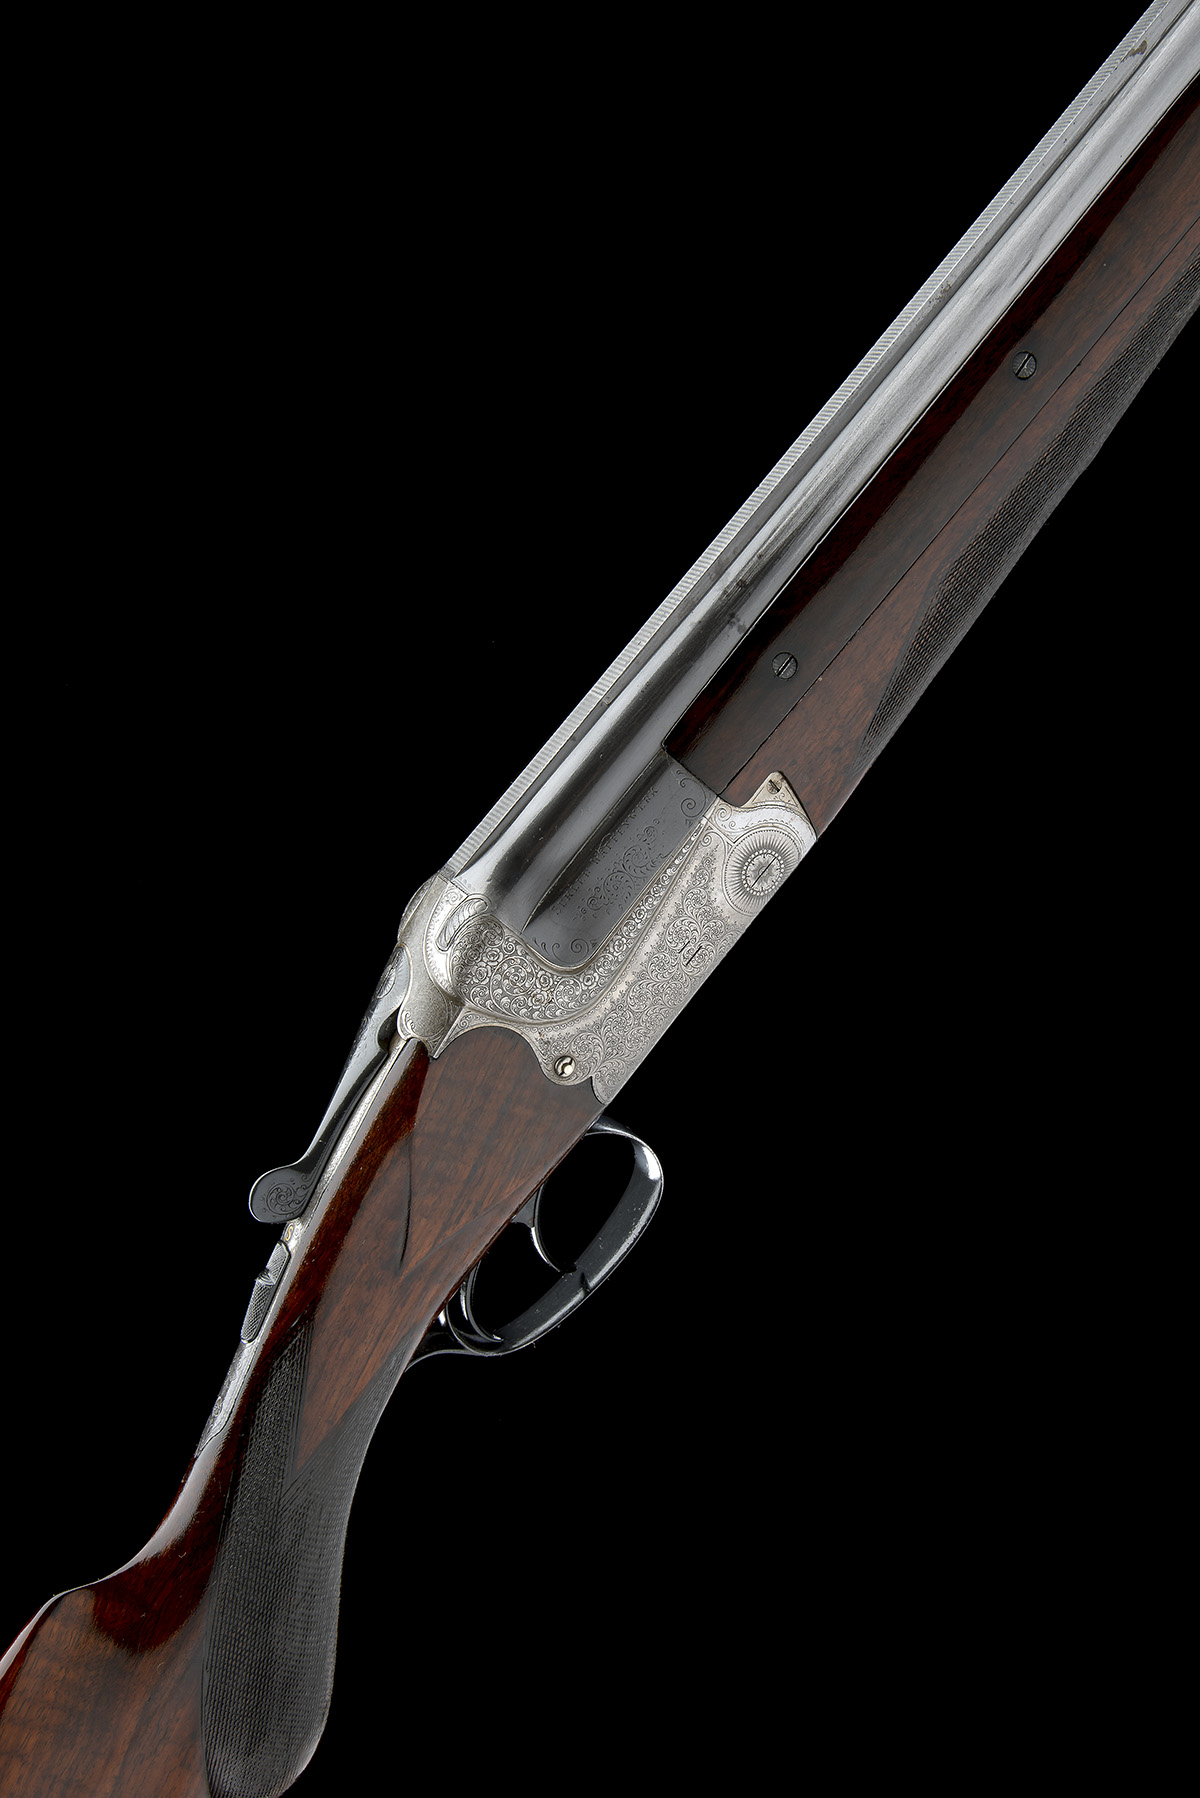 GEBRUDER MERKEL A 12-BORE DOUBLE-TRIGGER OVER AND UNDER EJECTOR, serial no. 21653, for August